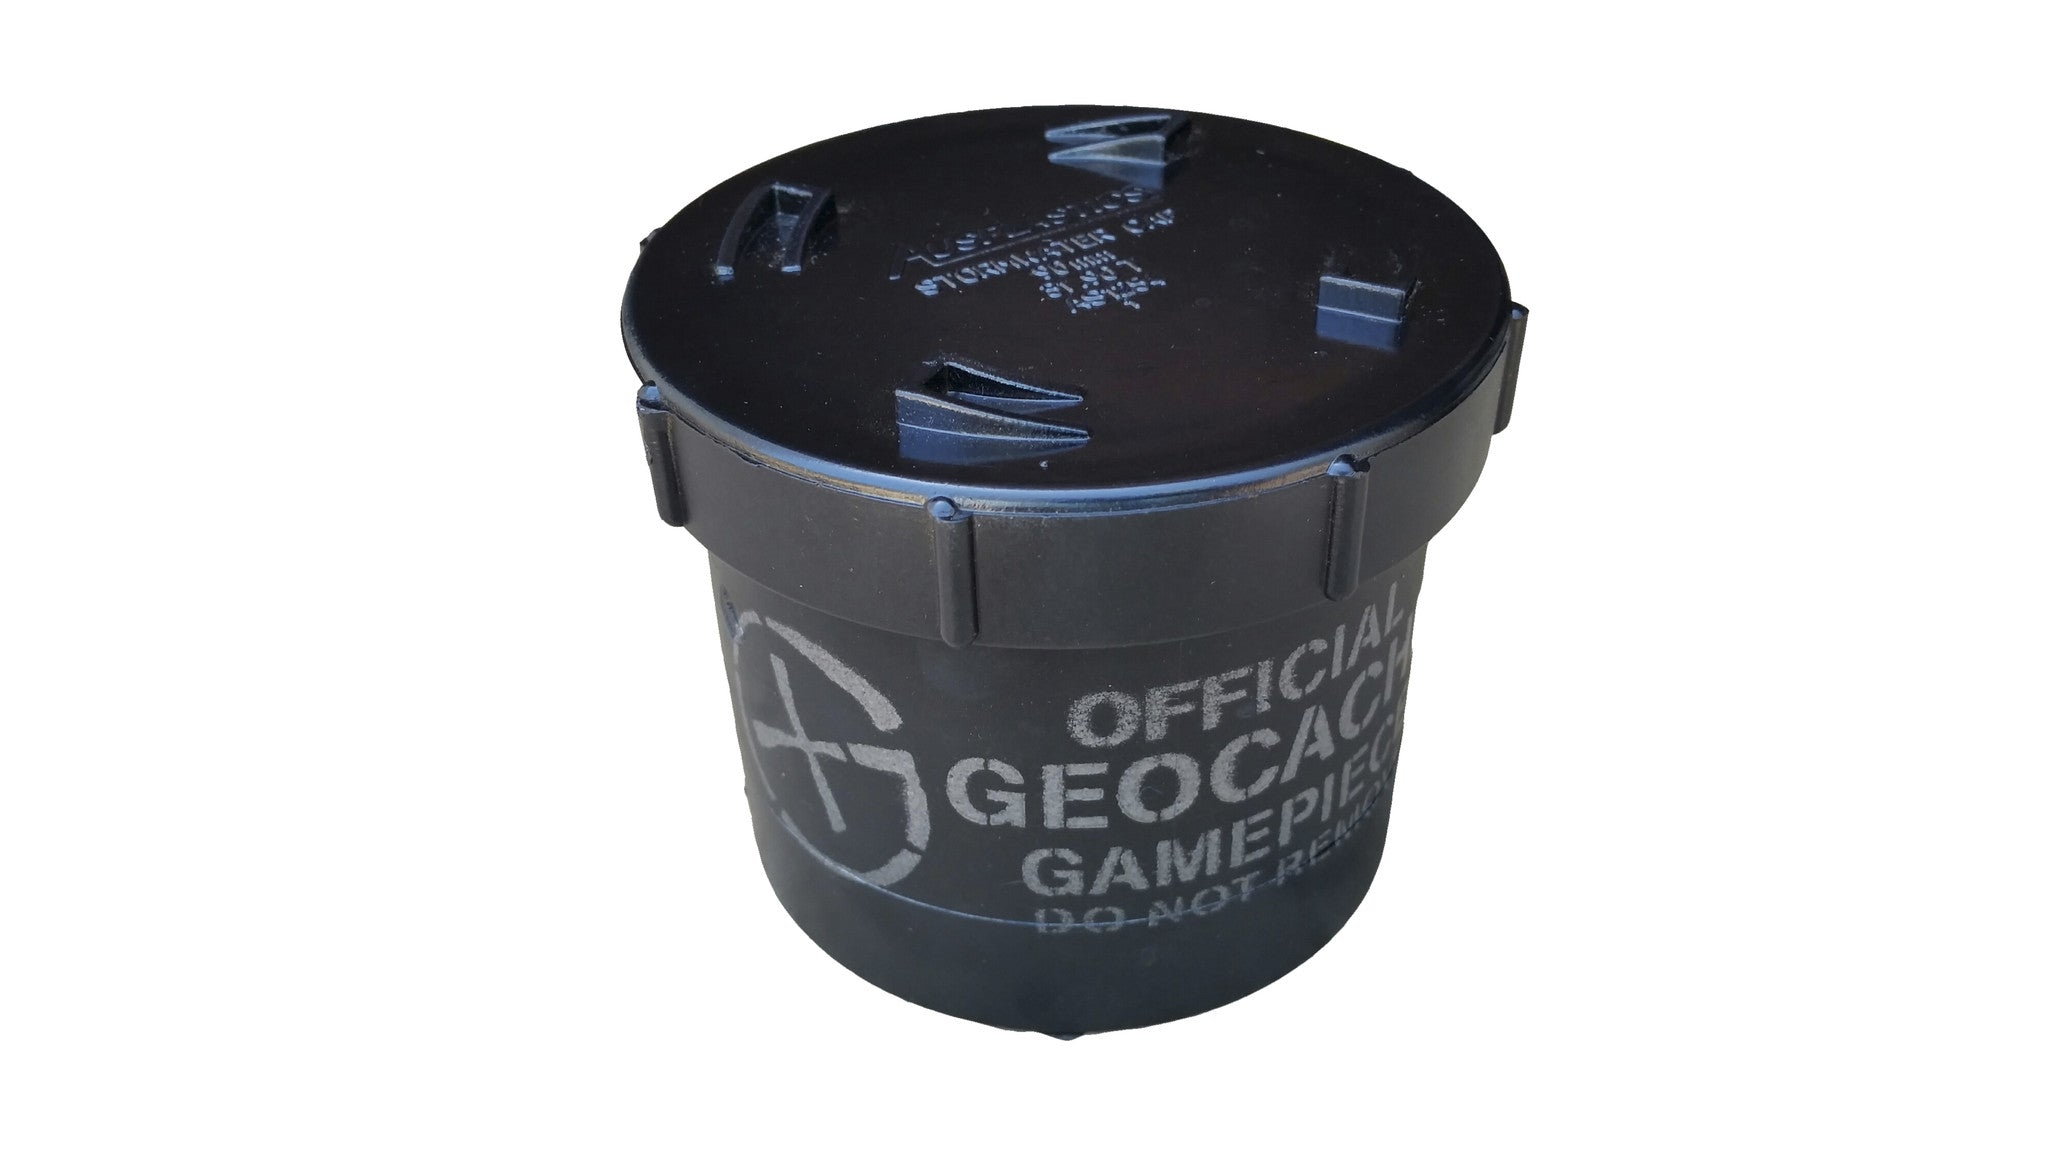 Short 90mm PVC Geocache Container - Black - Ground Zero Geocaching Supplies